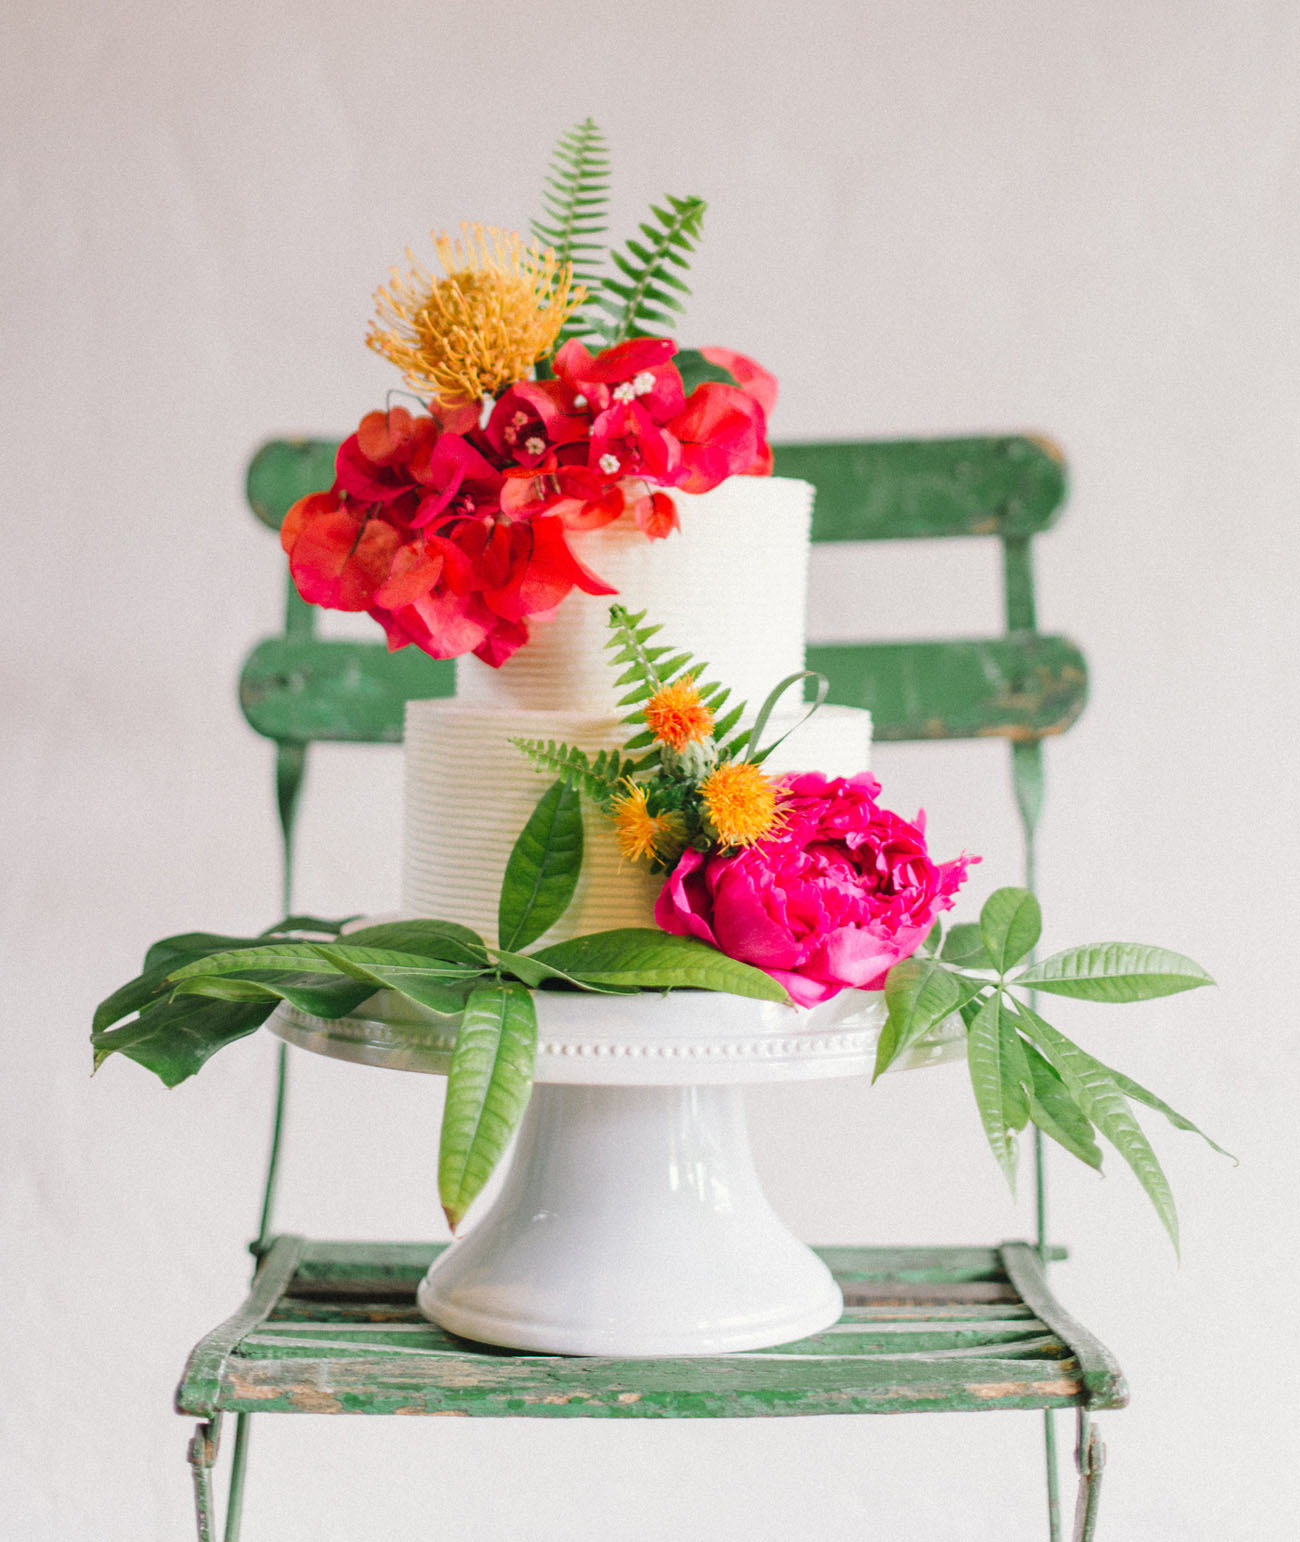 Modern Tropical Wedding Inspiration from Minted A $500